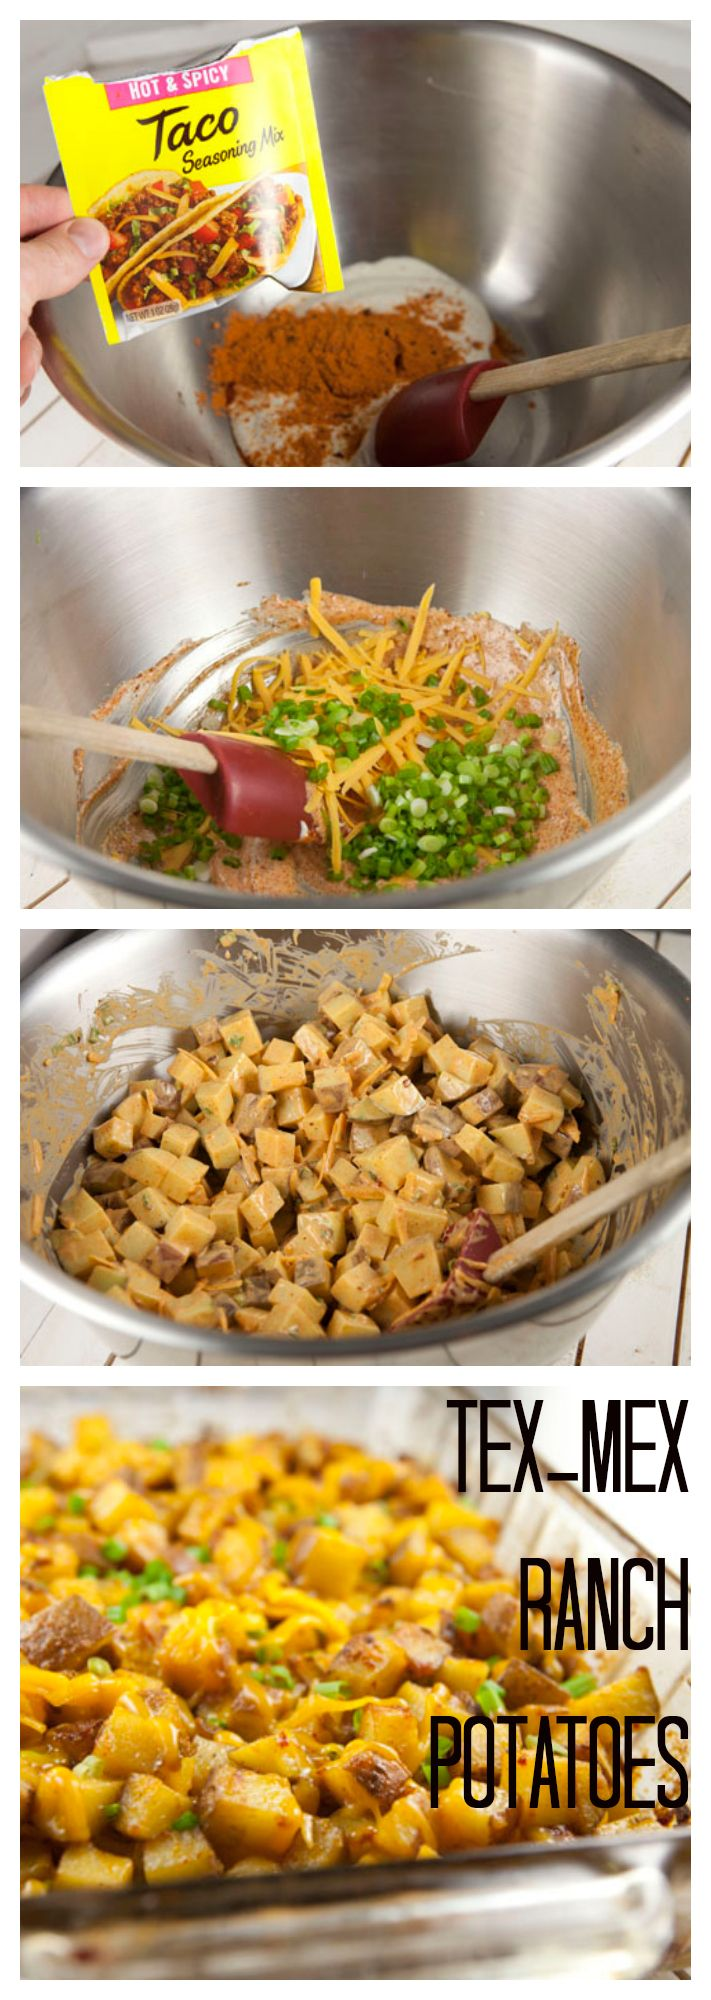 Tex-Mex Ranch Potatoes just add chicken